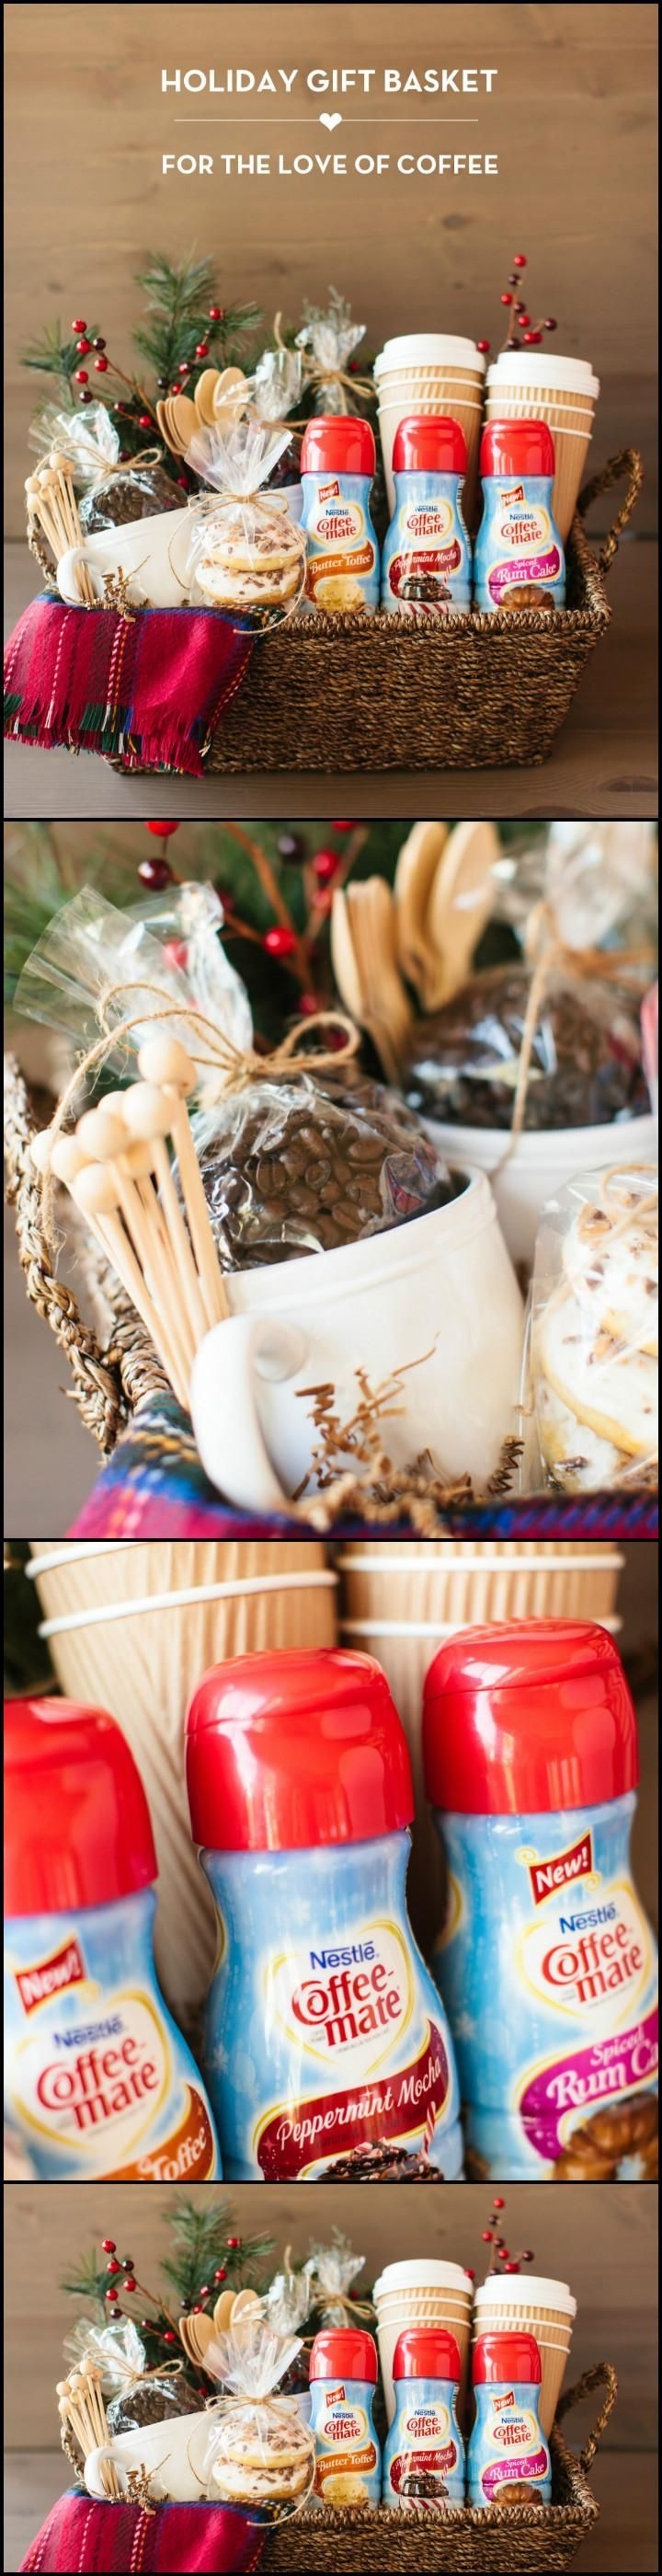 70 inexpensive diy gift basket ideas diy gifts page 12 of 14 70 inexpensive diy gift basket ideas diy gifts page 12 of 14 solutioingenieria Images